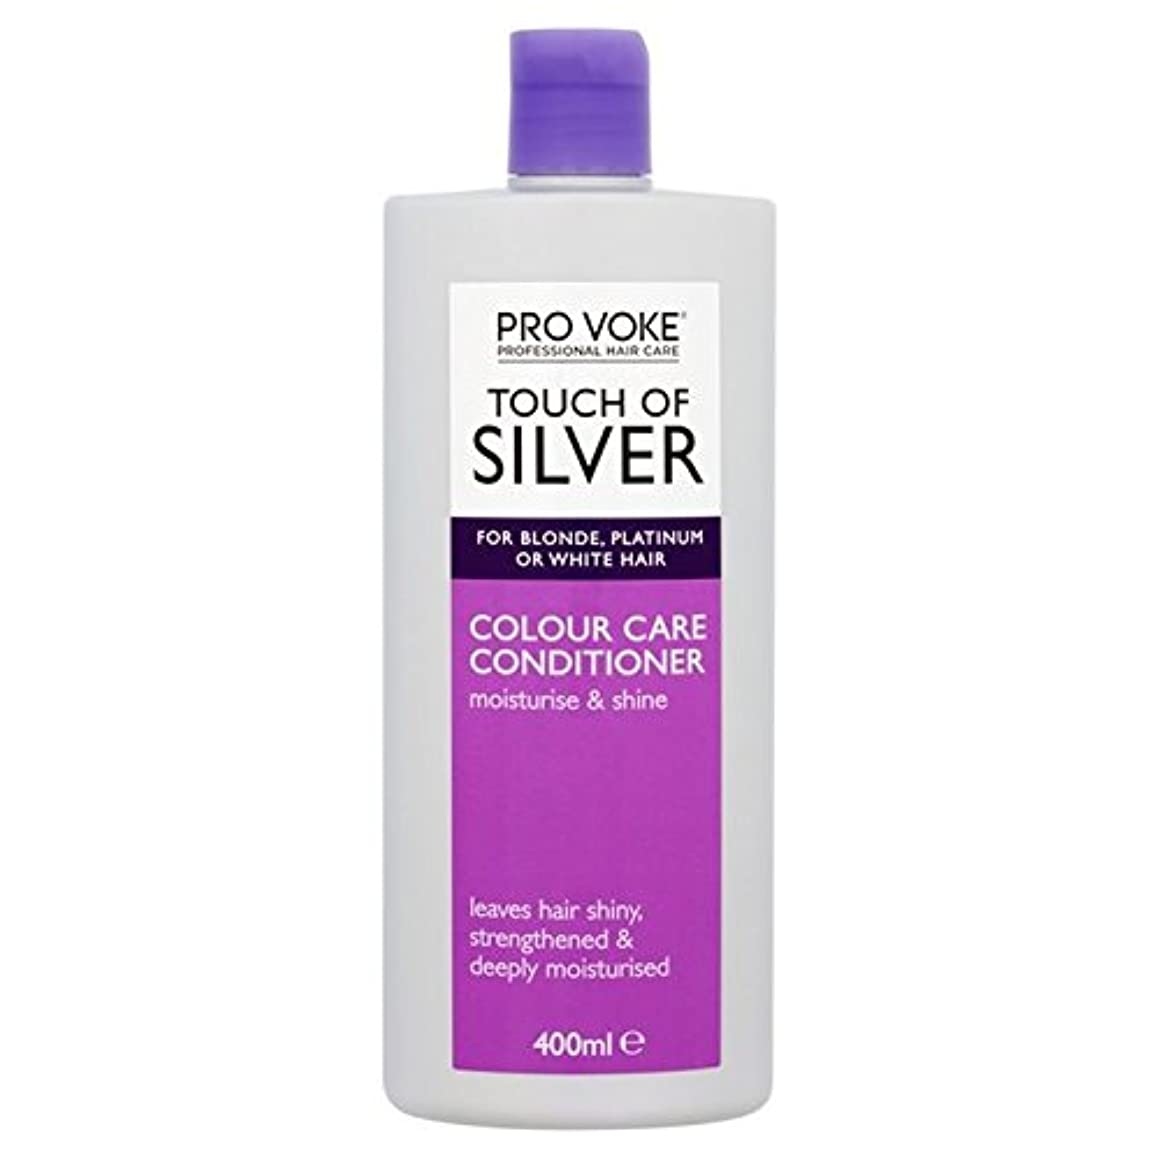 Touch of Silver Daily Nourish Conditioner 400ml (Pack of 6) - 銀毎日ナリッシュコンディショナー400ミリリットルのタッチ x6 [並行輸入品]